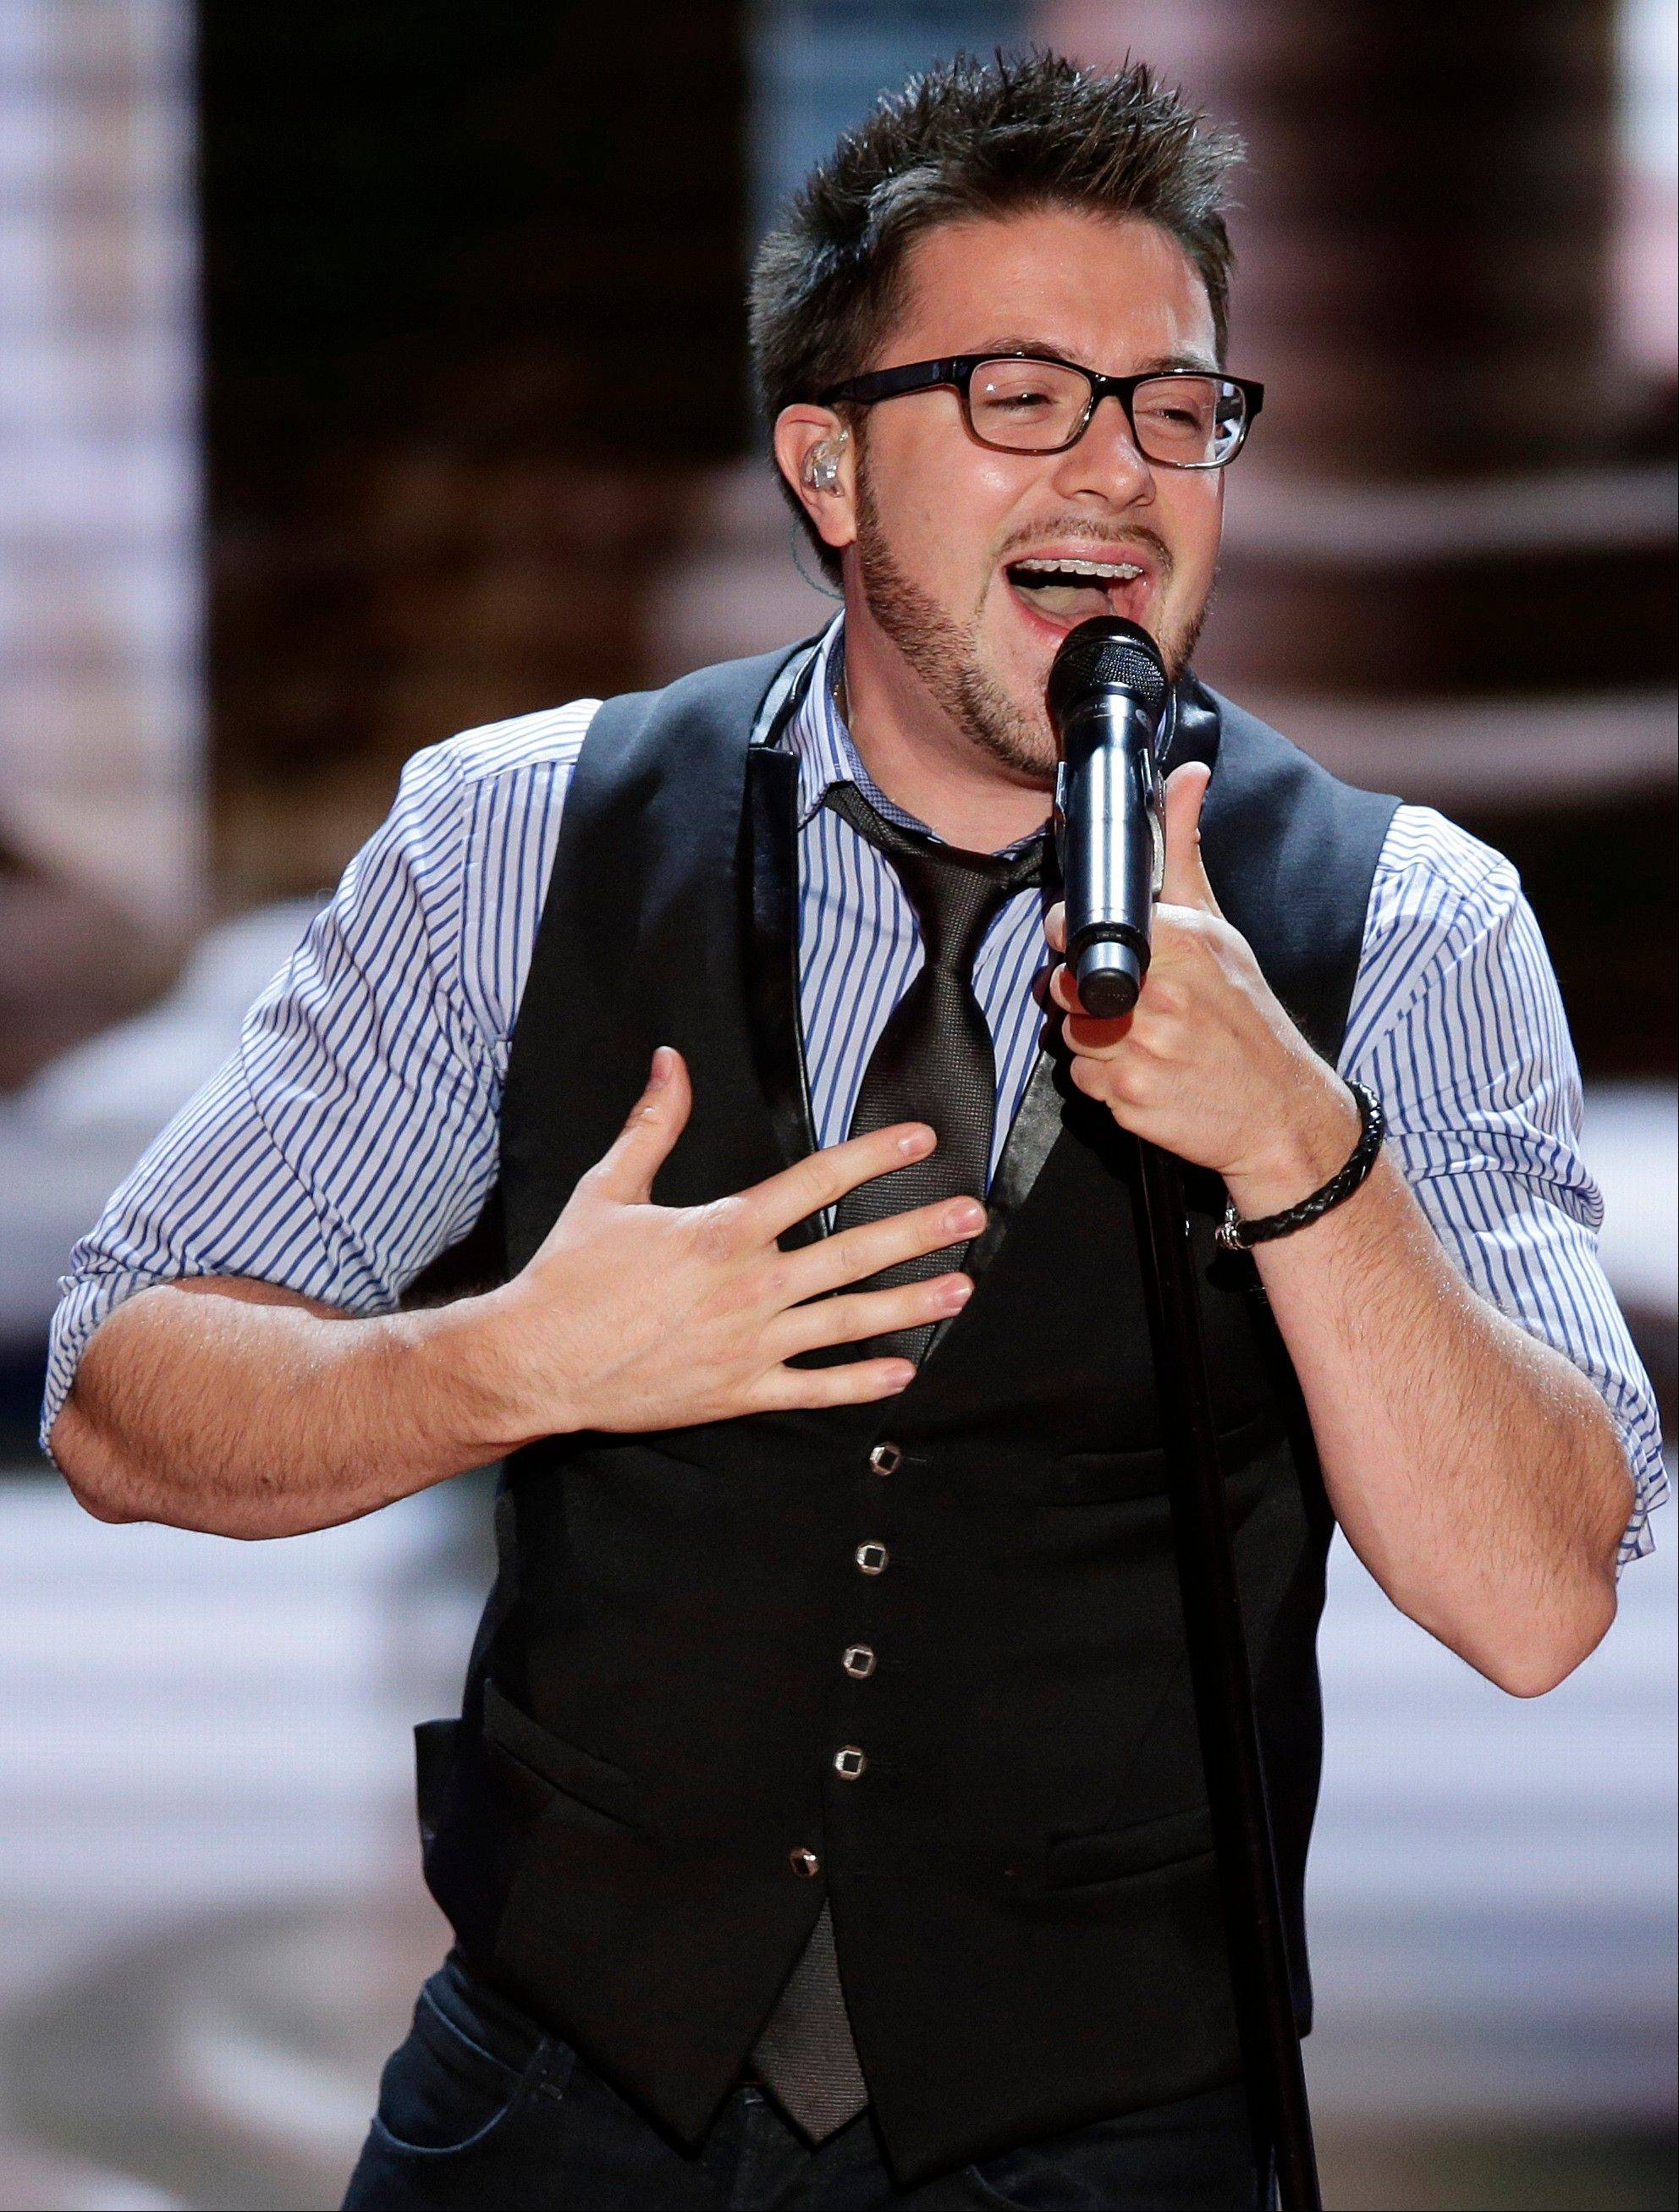 Danny Gokey performs during the Republican National Convention in Tampa, Fla., on Wednesday, Aug. 29, 2012.